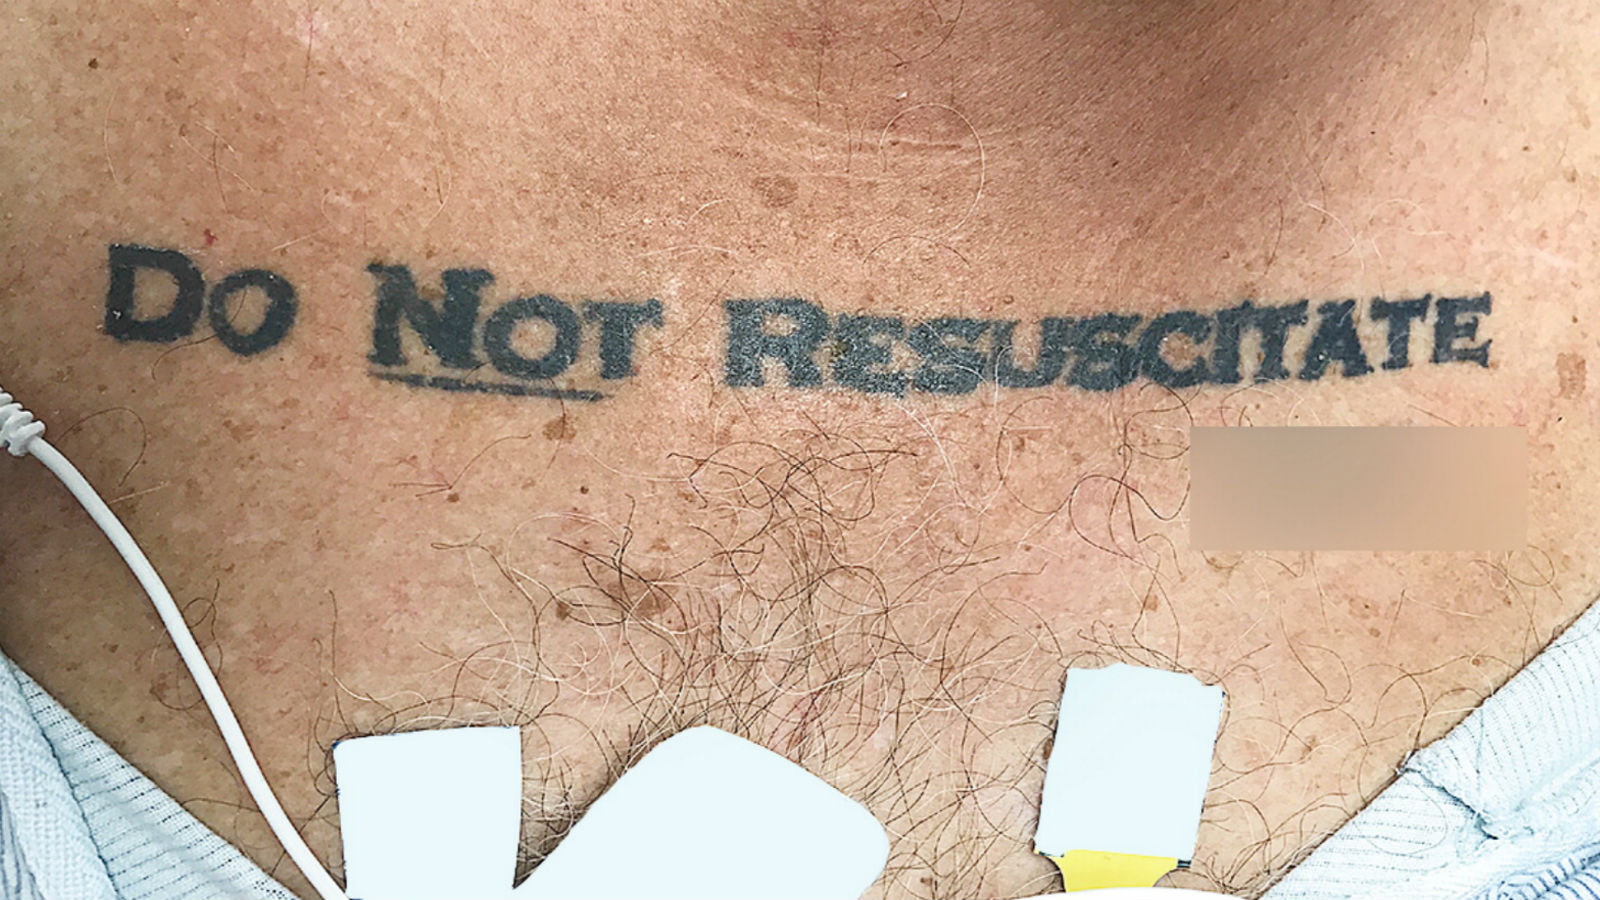 A Man S Do Not Resuscitate Tattoo Left Doctors Debating Whether To Save His Life